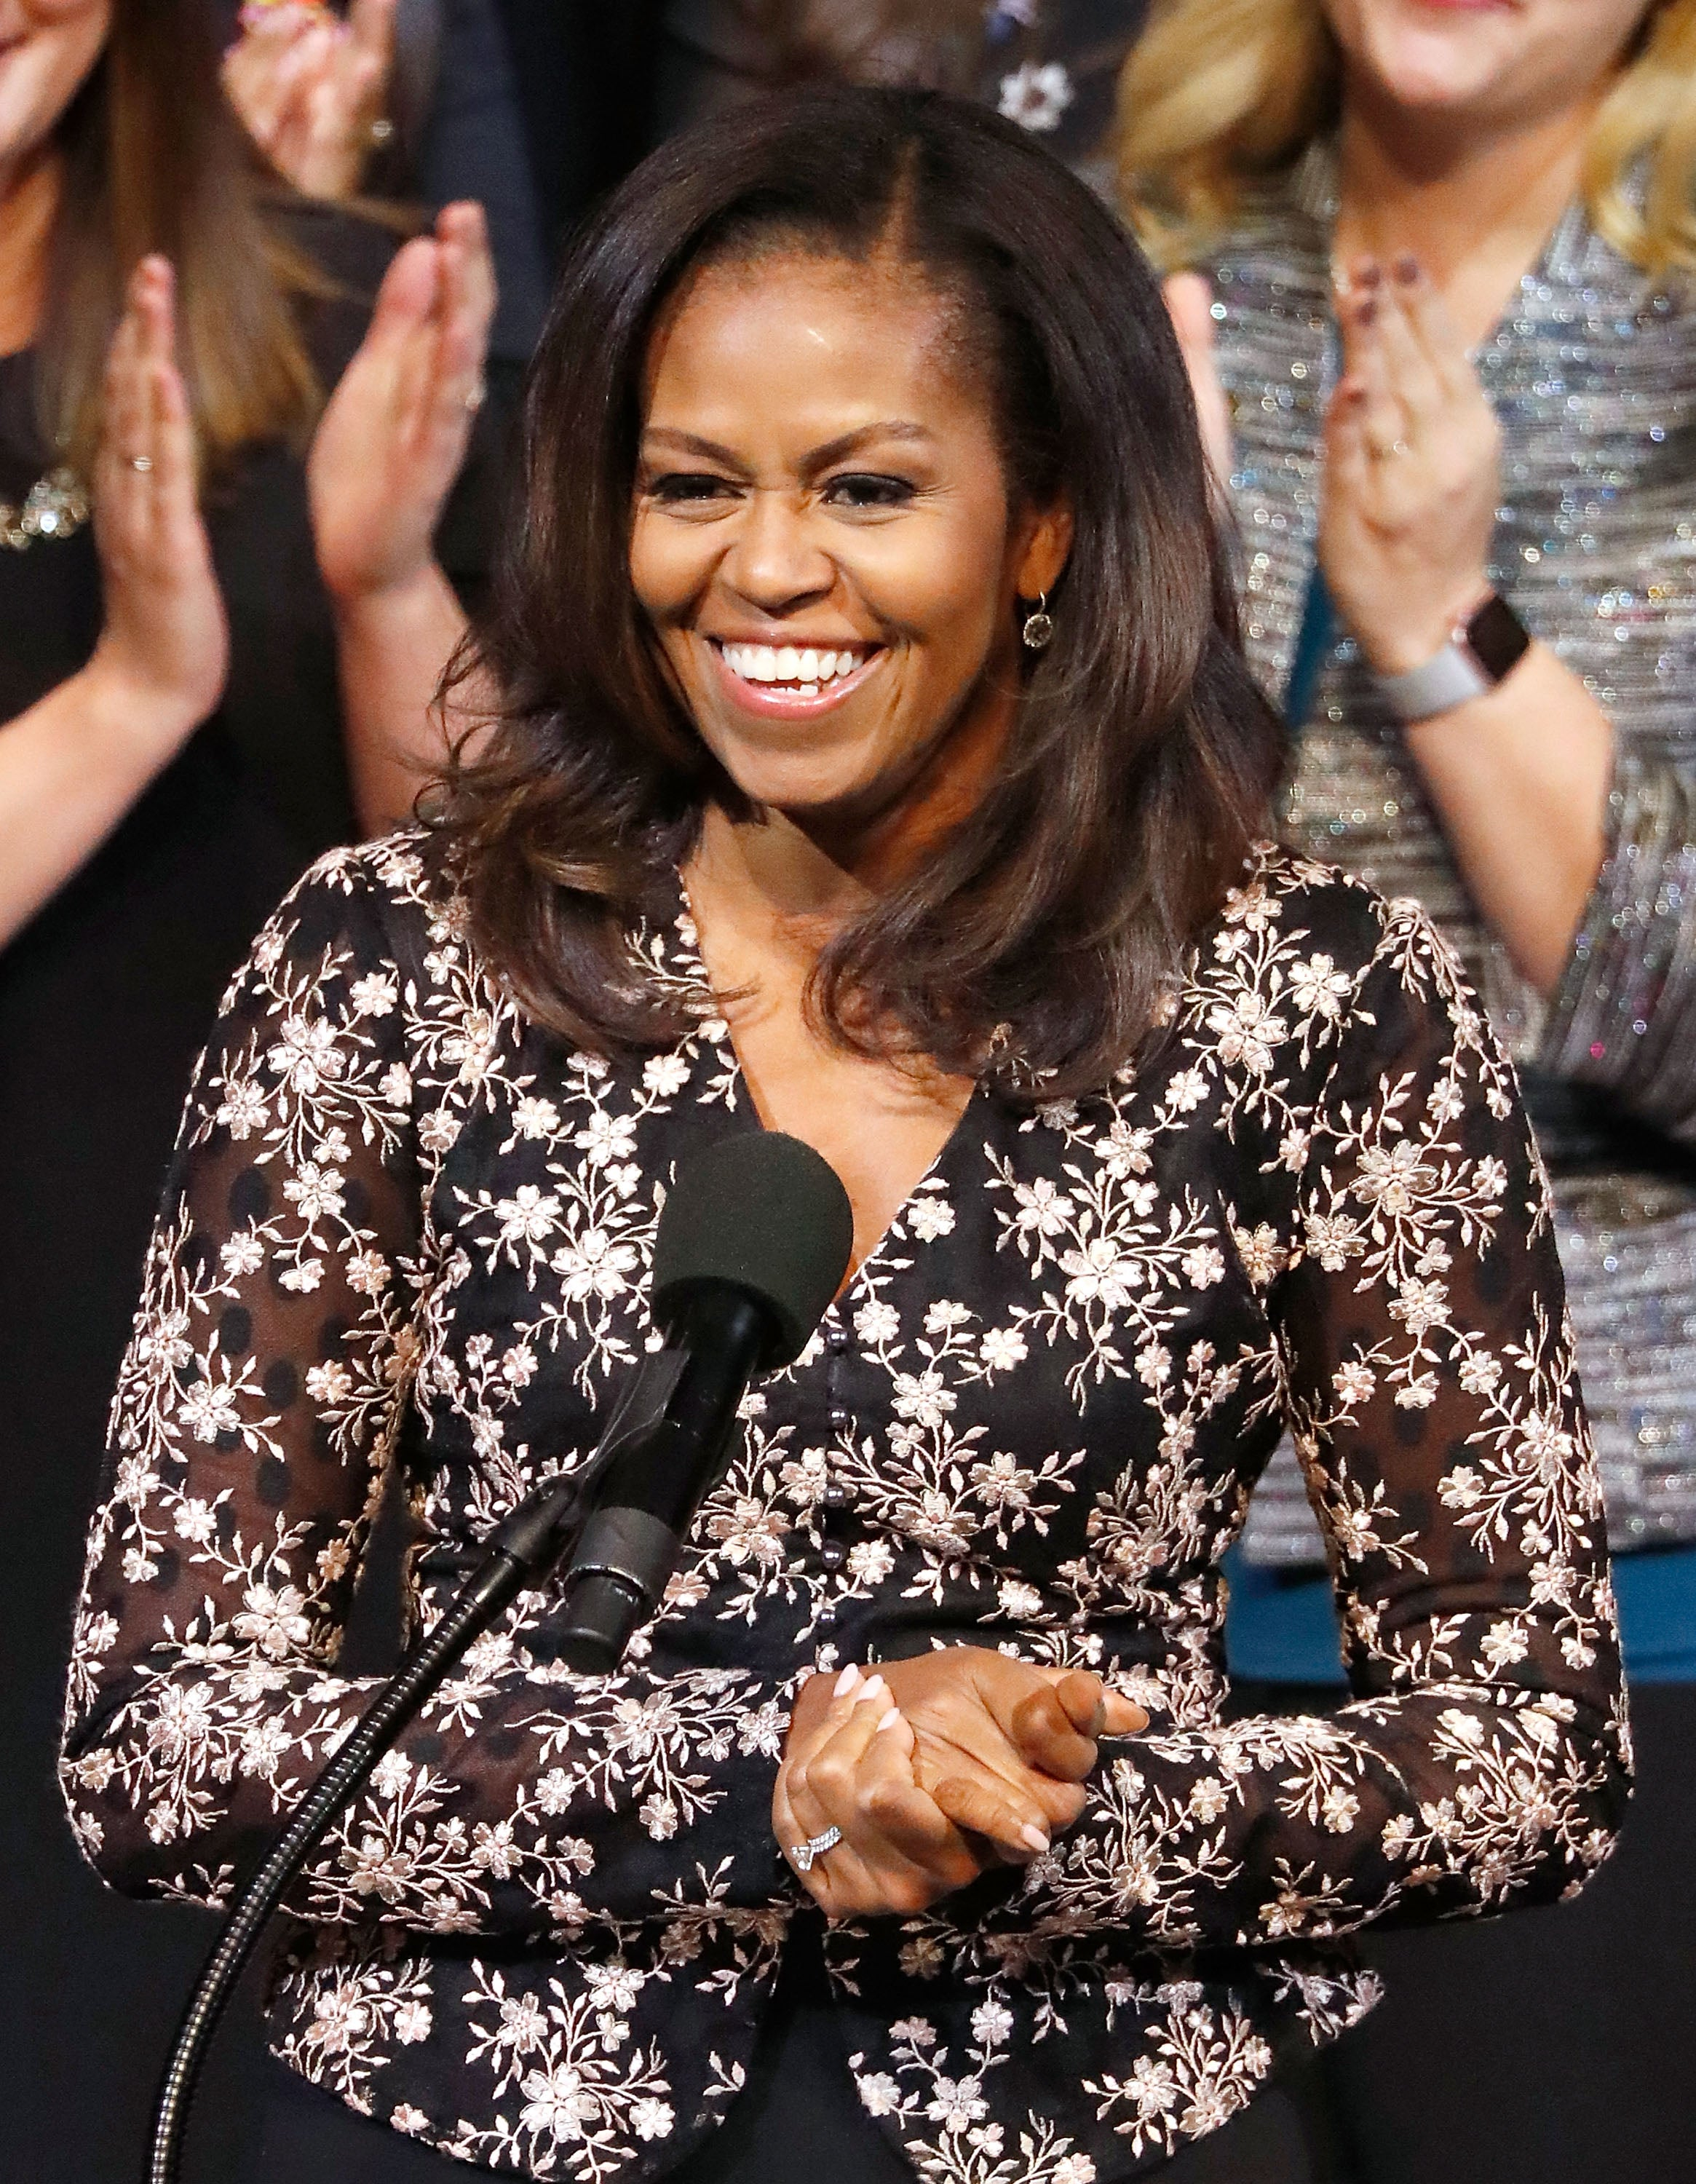 Michelle Obama Has Some Social Media Tips For Donald Trump: Use It Like A Grown Up